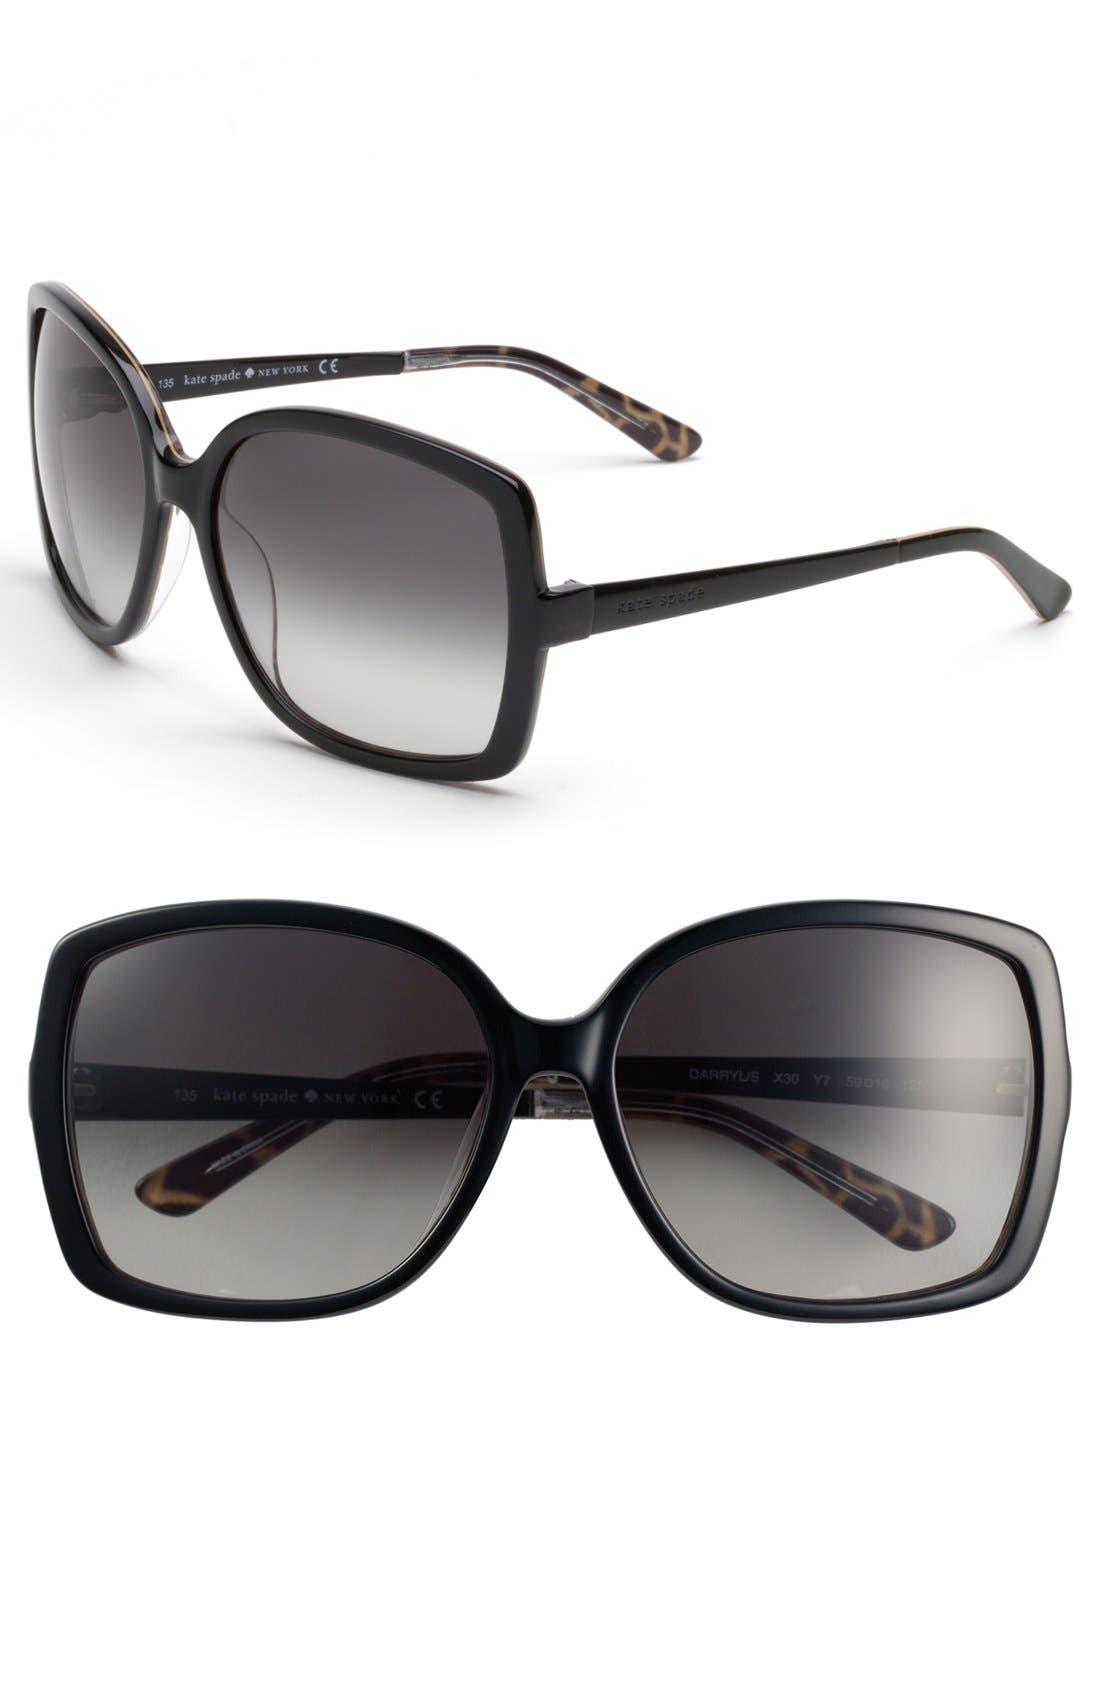 Alternate Image 1 Selected - kate spade new york 'darryl' 59mm oversized sunglasses